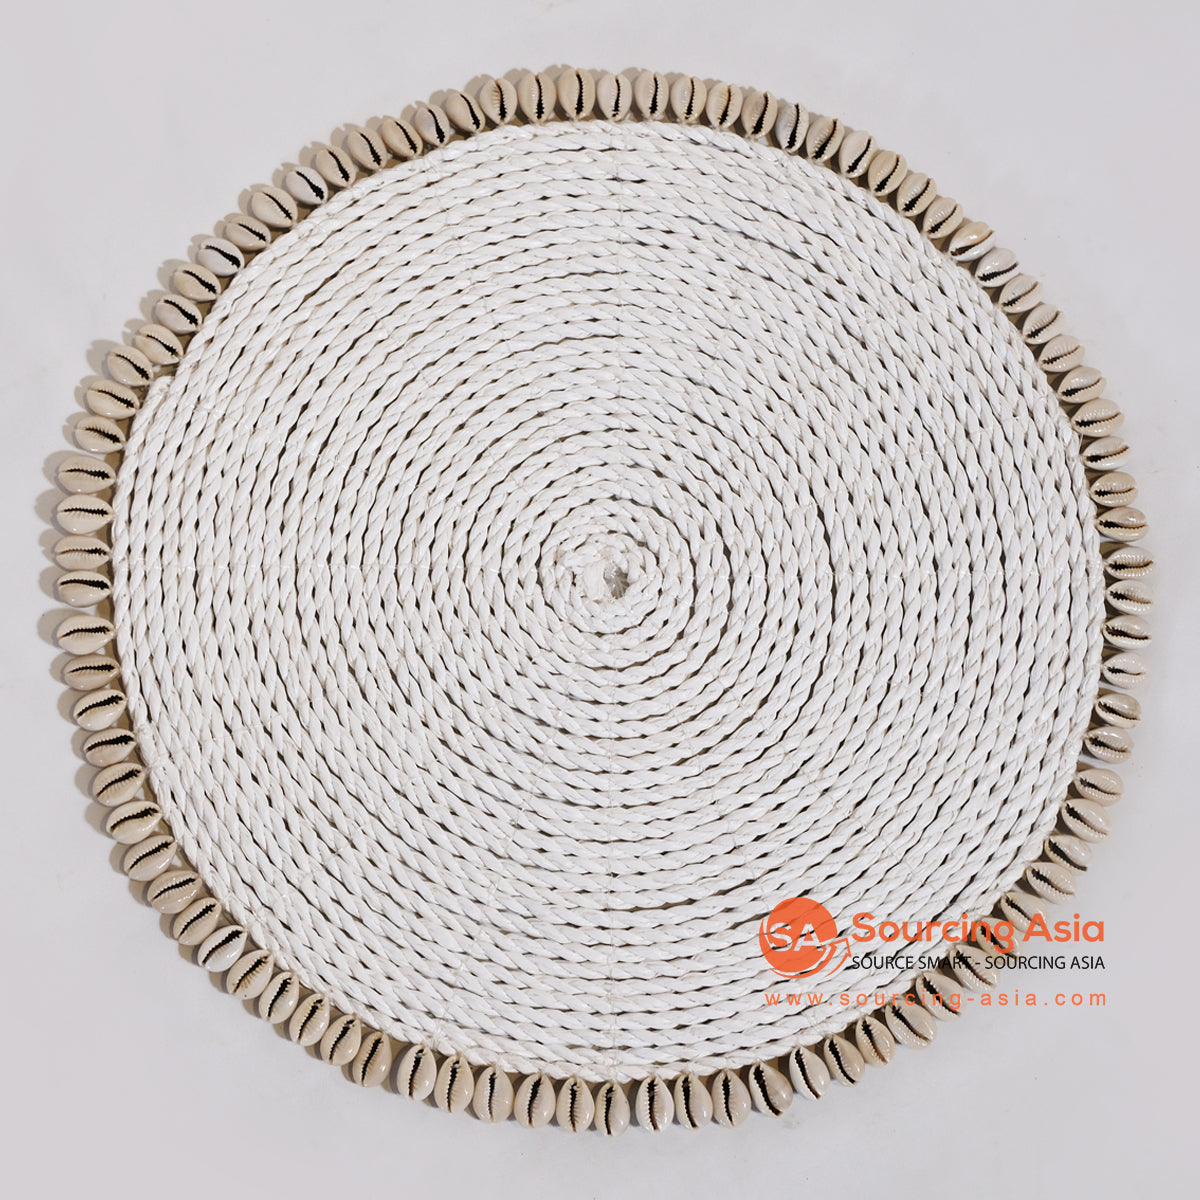 MRC003 WHITE SEAGRASS ROUND COASTER WITH SHELL